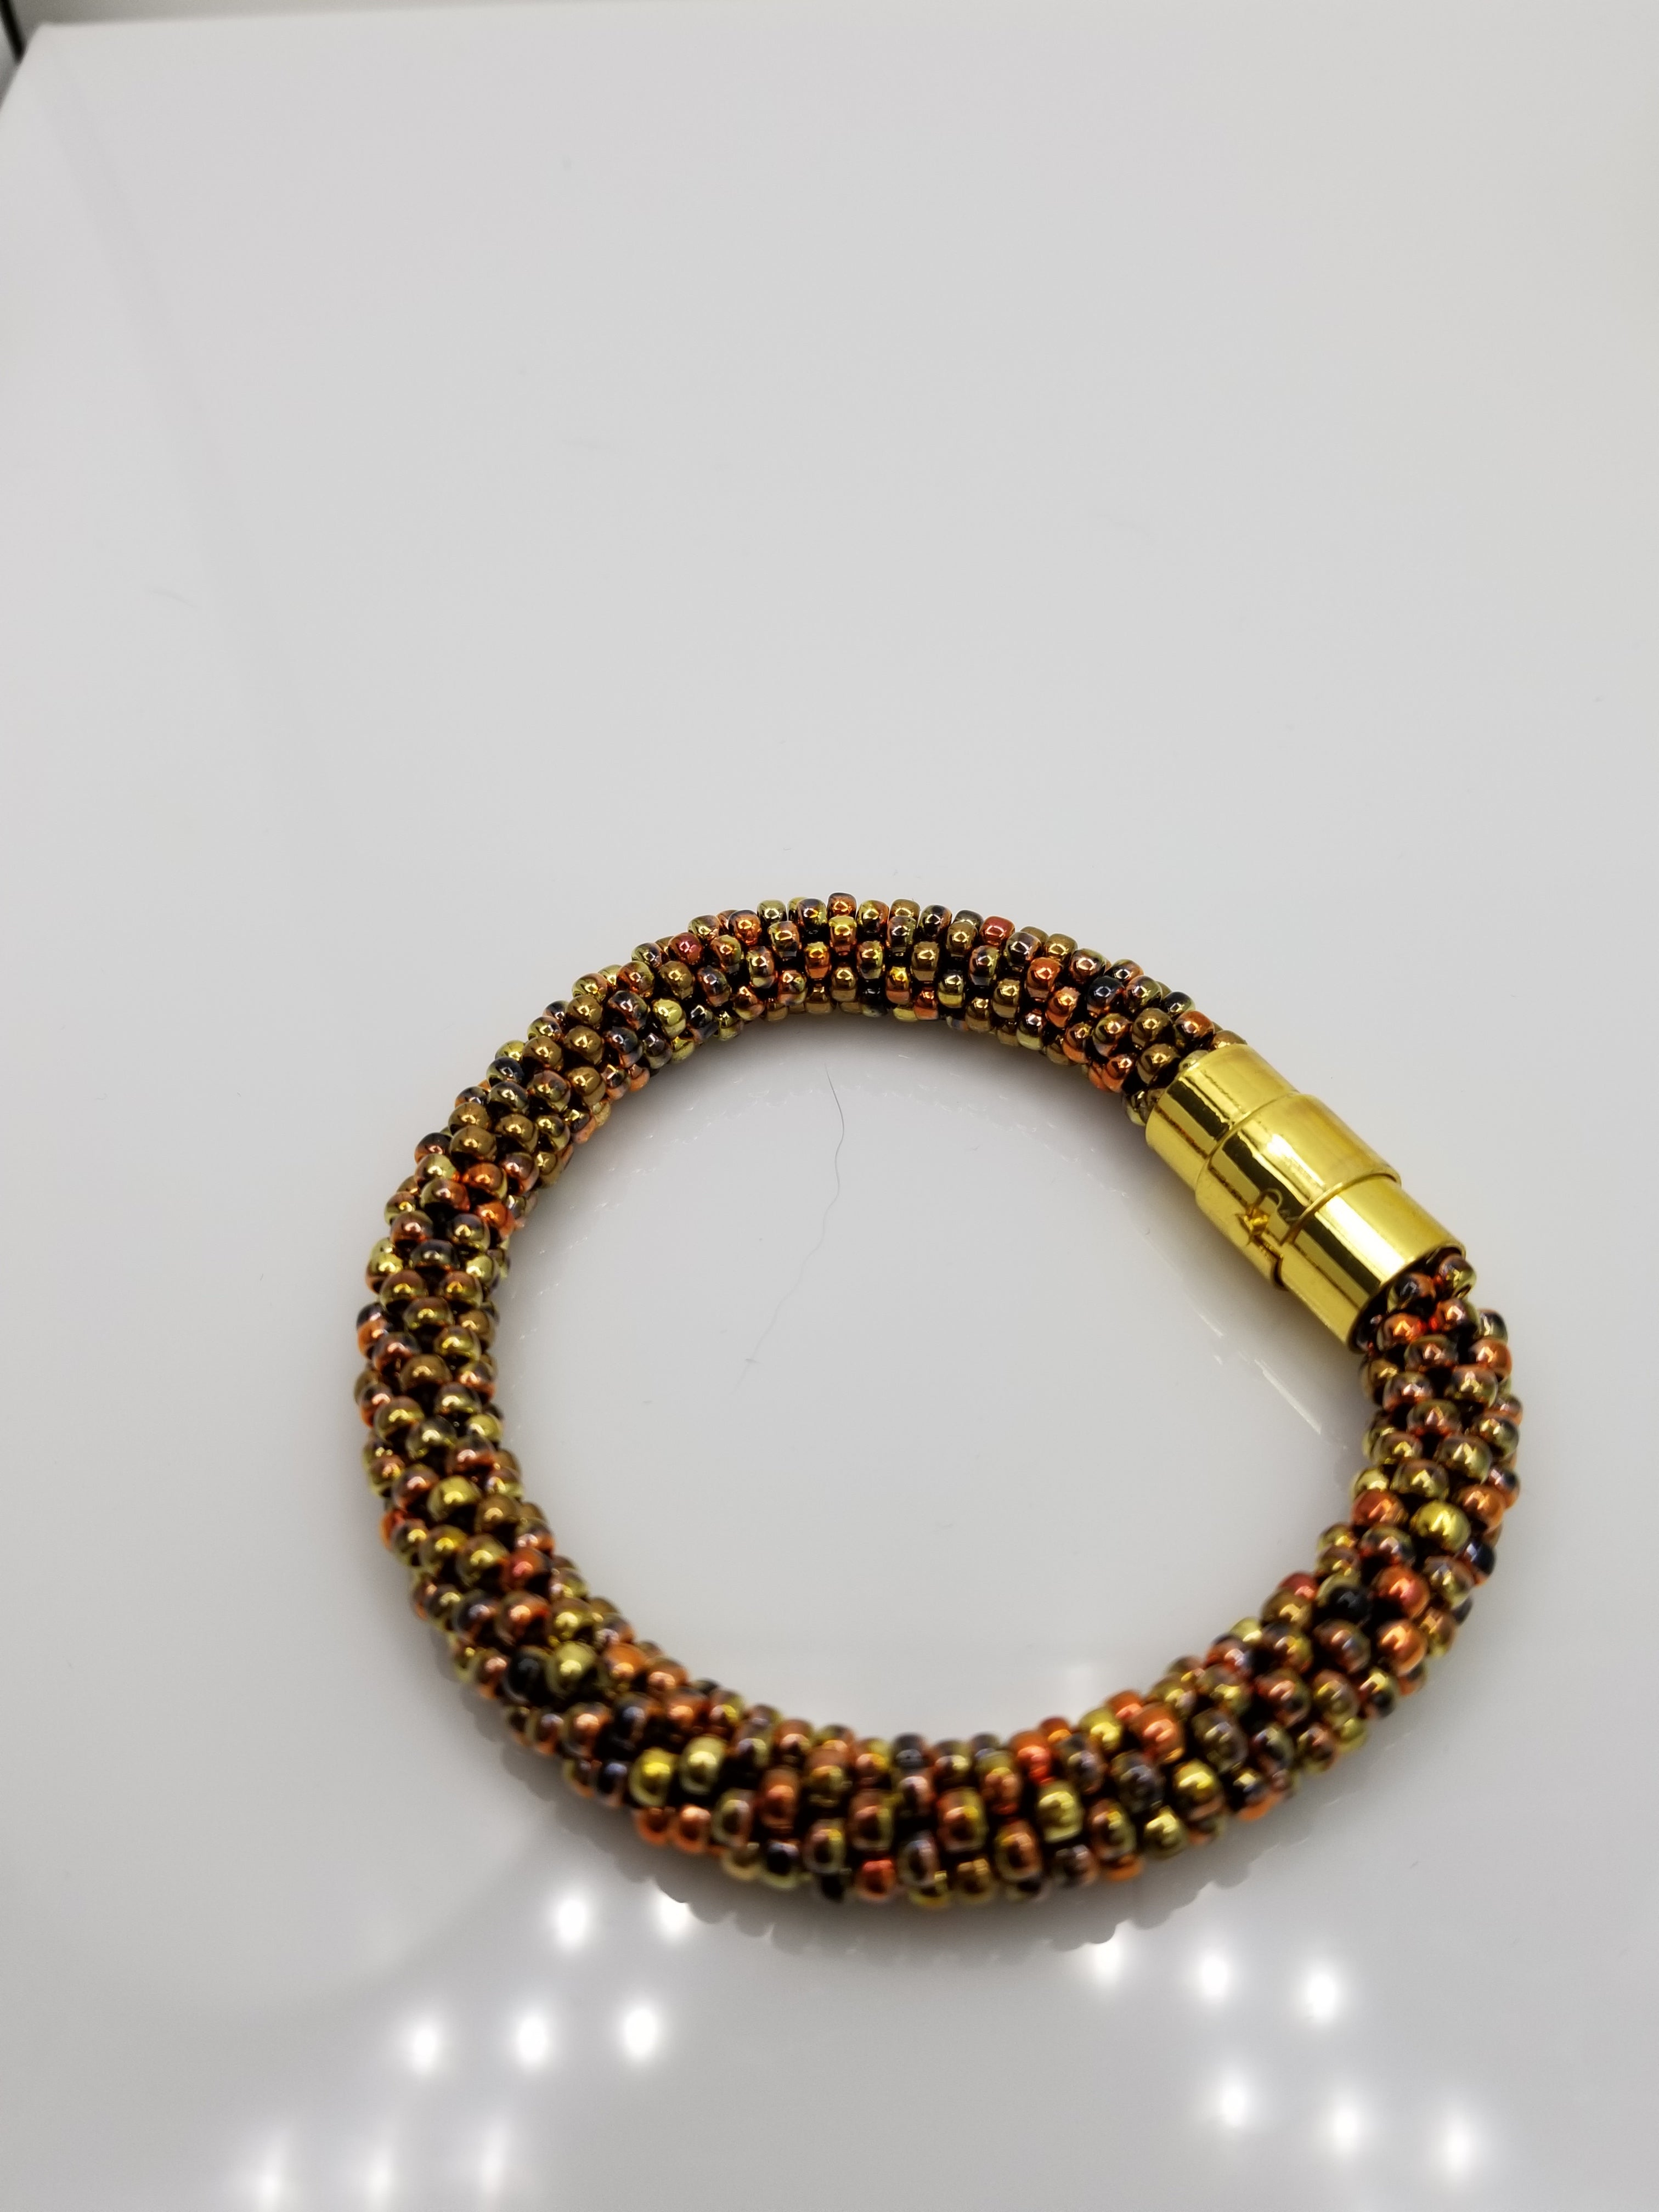 Shades of Gold and Copper Glass Beads